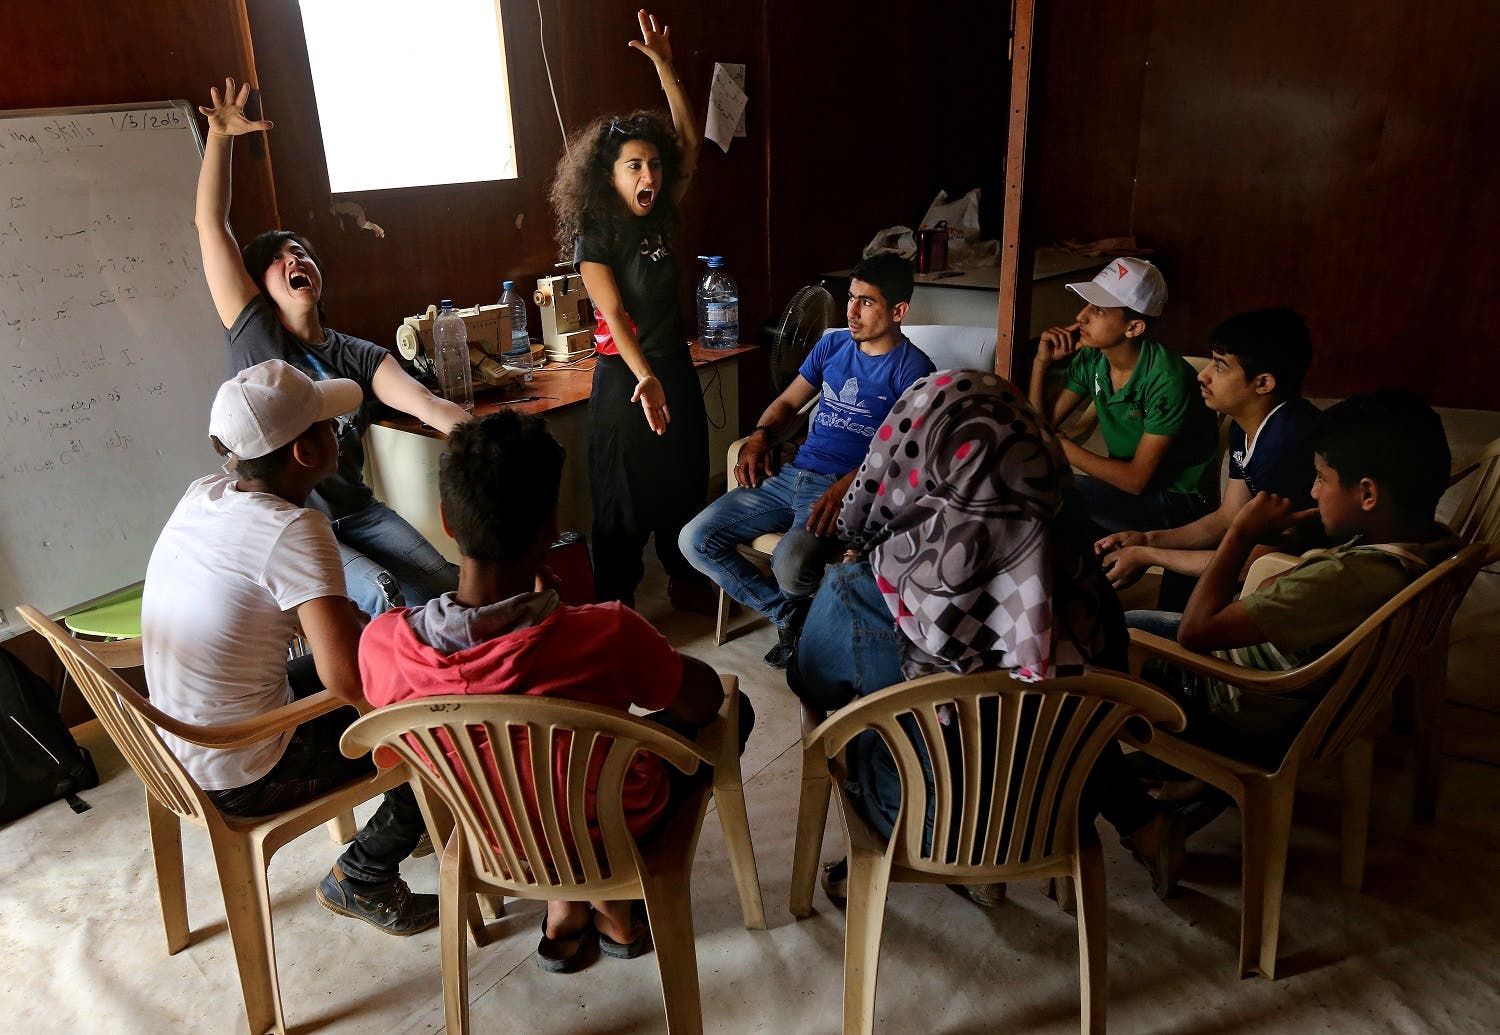 In this picture taken on Tuesday May 3, 2016, Sabine Choucair, Lebanese artistic director of The Caravan, center, and her co-director Ailin Conant, left, train Syrian refugee actors during a rehearsal performance, at an informal refugee camp, in the eastern town of Bar Elias, in Bekaa valley, Lebanon. The Caravan, a street performance project that plans to tour Lebanon over the next six weeks, is a collection of stories told, recorded and acted by Syrian refugees. And the range of reactions at the Saadnayel market is precisely what the directors of the project anticipated, even desired. Five years since the war in Syria, the influx has not stopped and Lebanese and Syrians alike are grappling to deal with the new reality in the absence of a political resolution. (AP